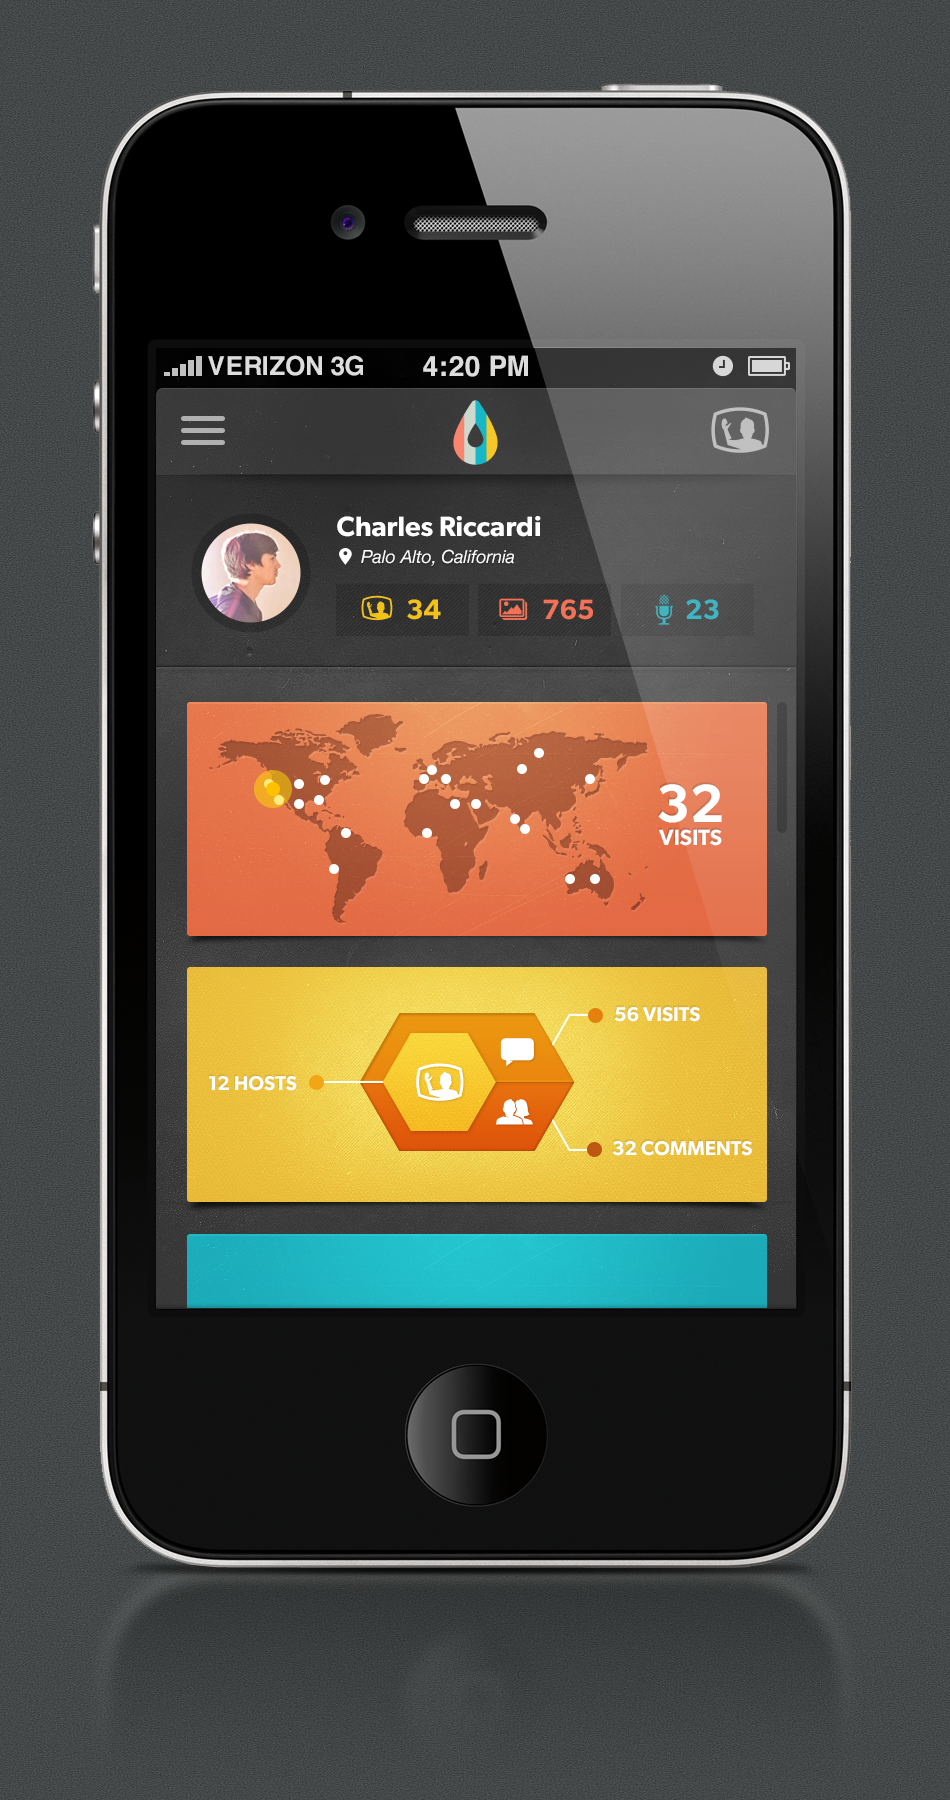 Dribbble - infographic-dribbble-large.png by Jeremiah Shaw